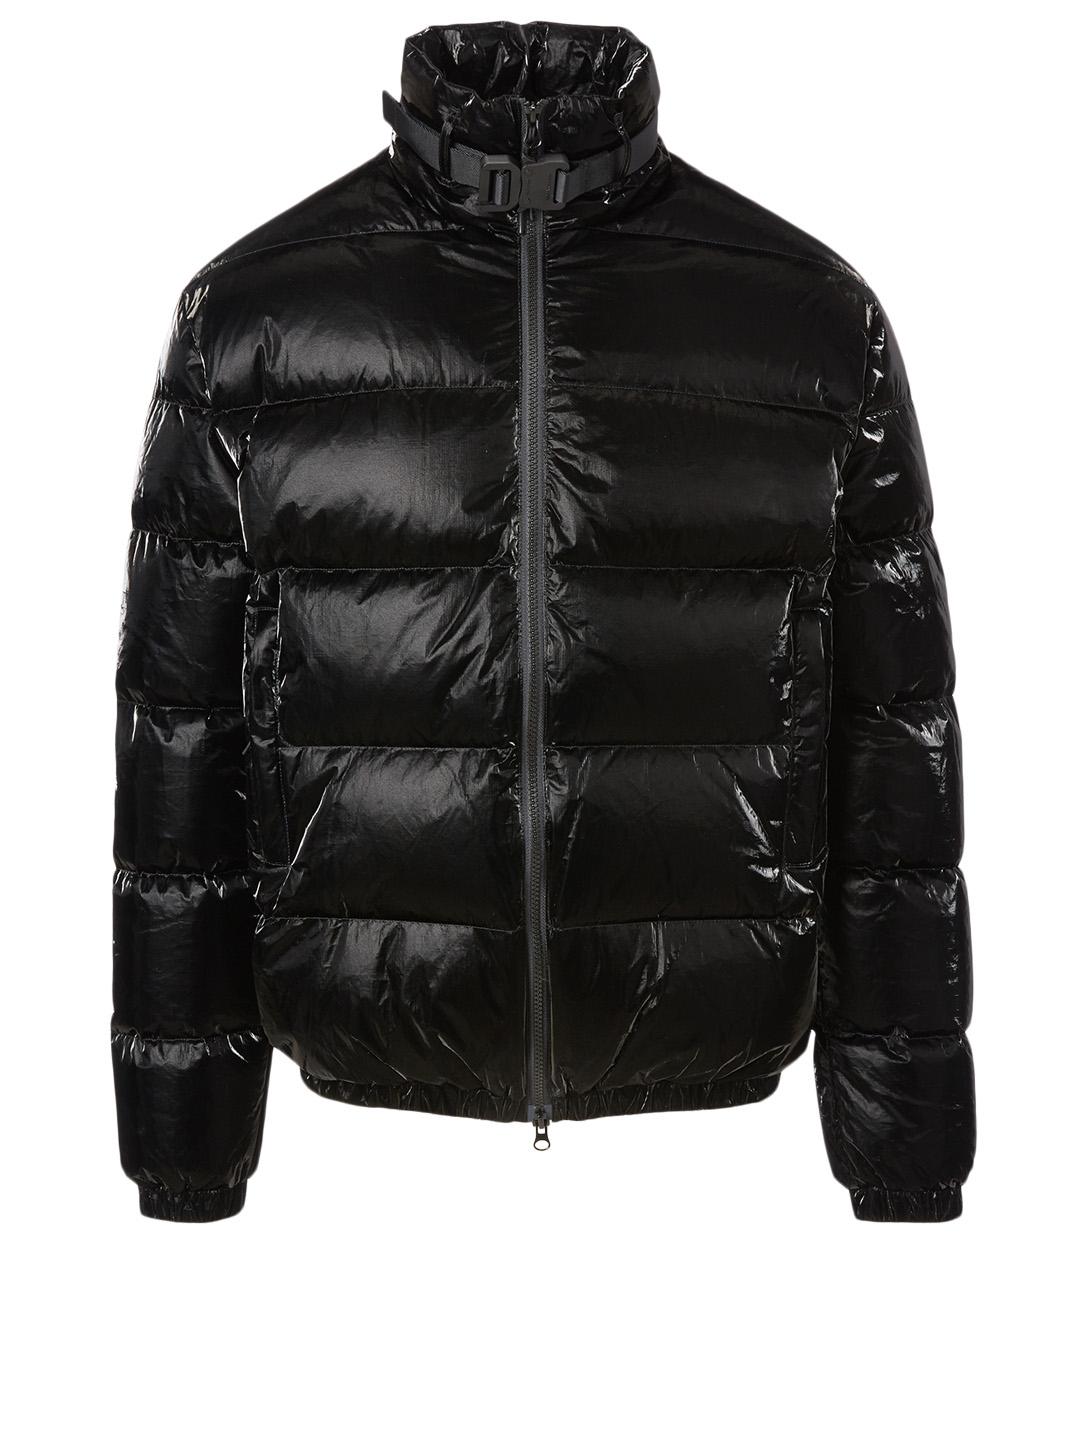 1017 ALYX 9SM Down Puffer Coat With Buckle Men's Black